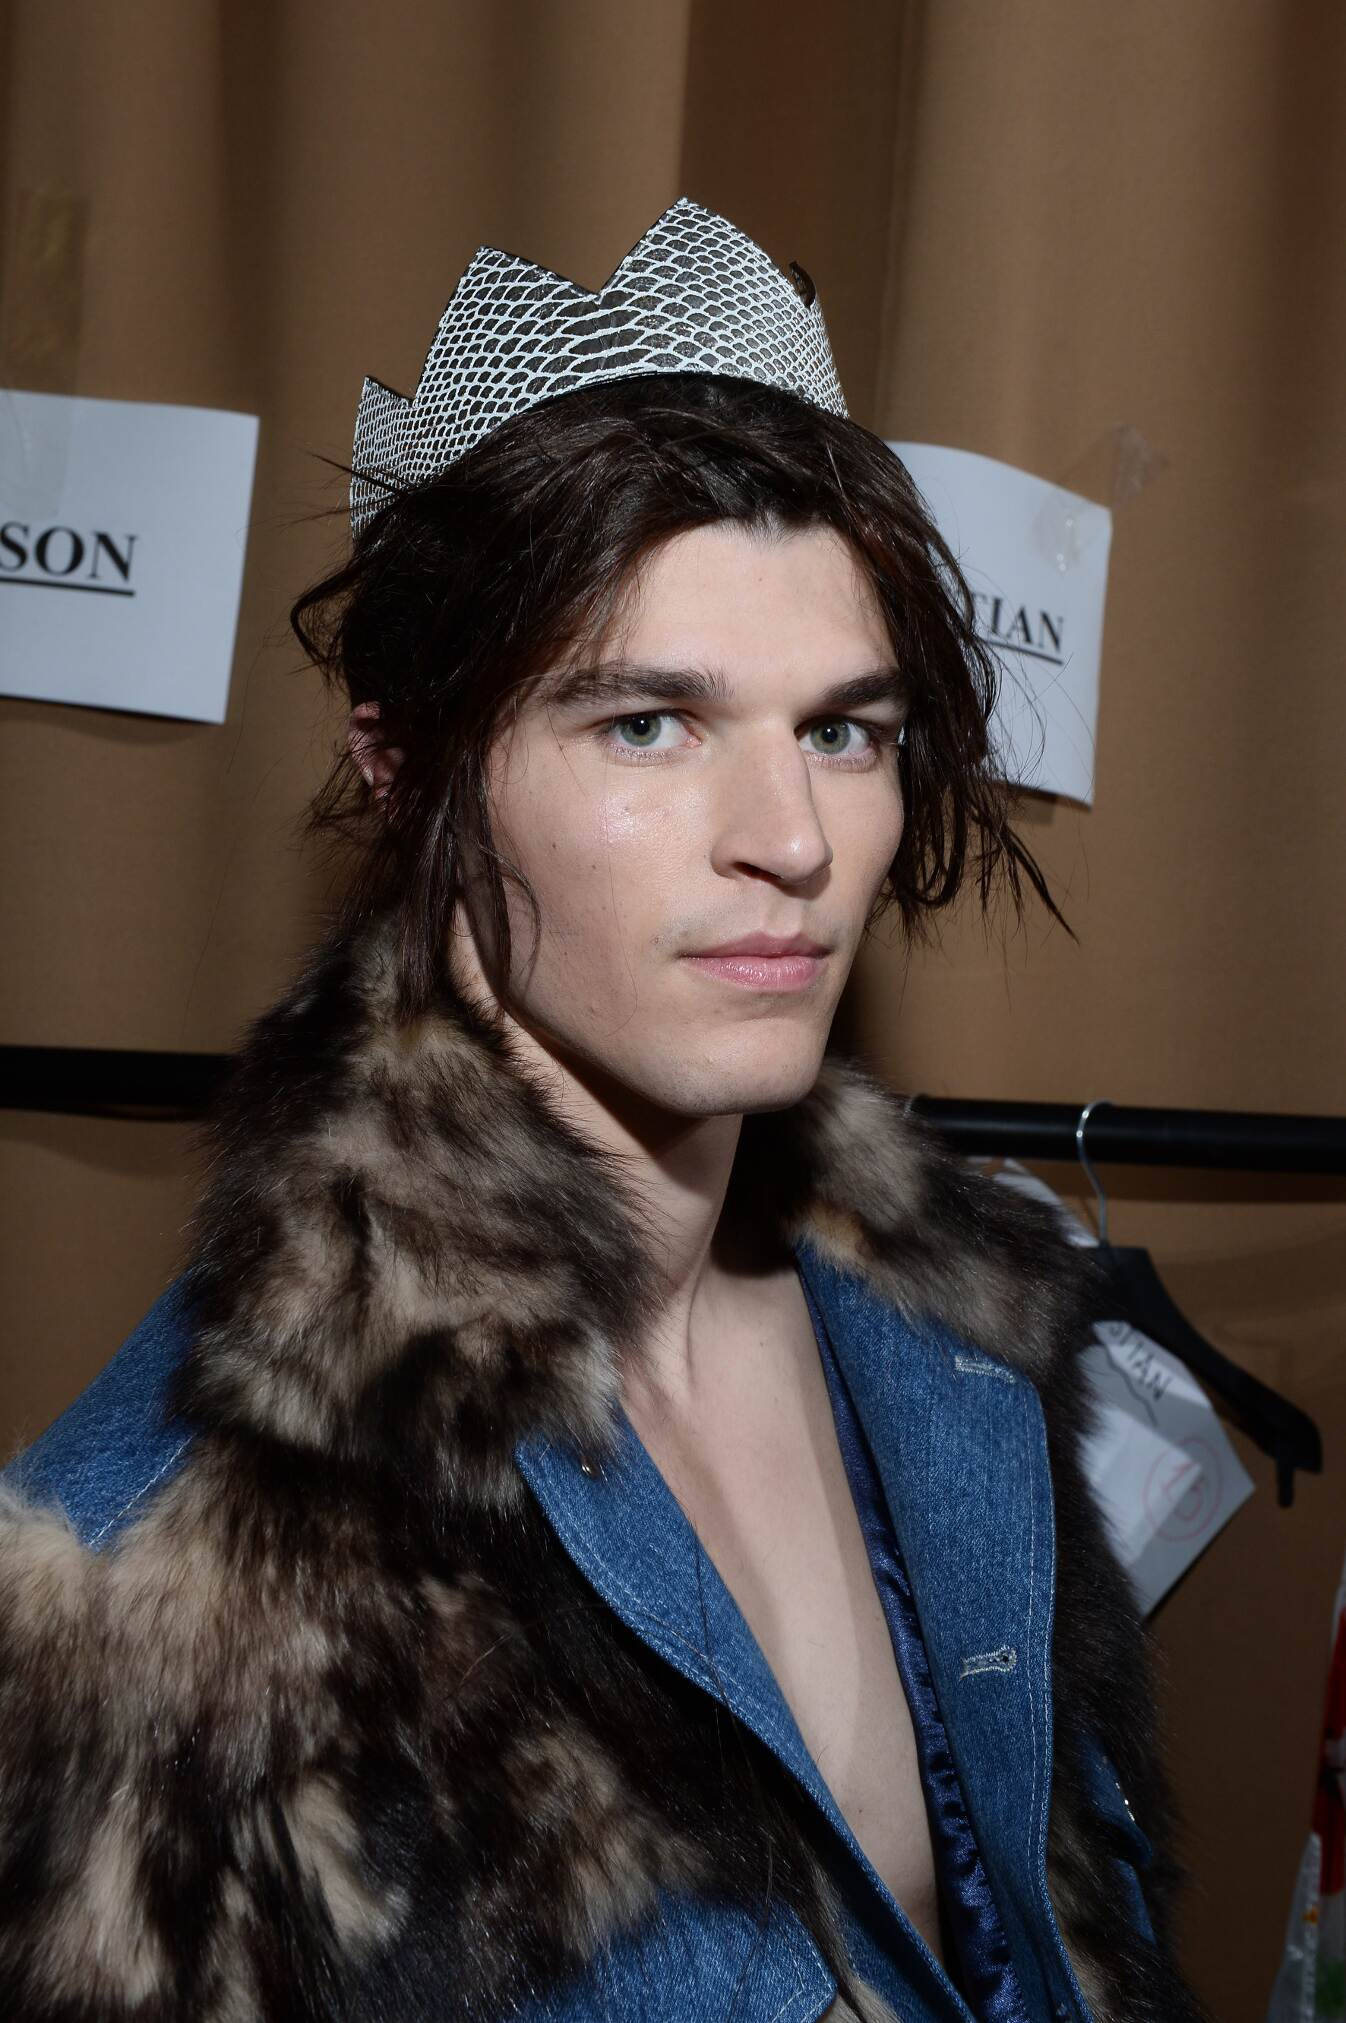 Backstage Moschino Man Model Fall 2015 London Fashion Week